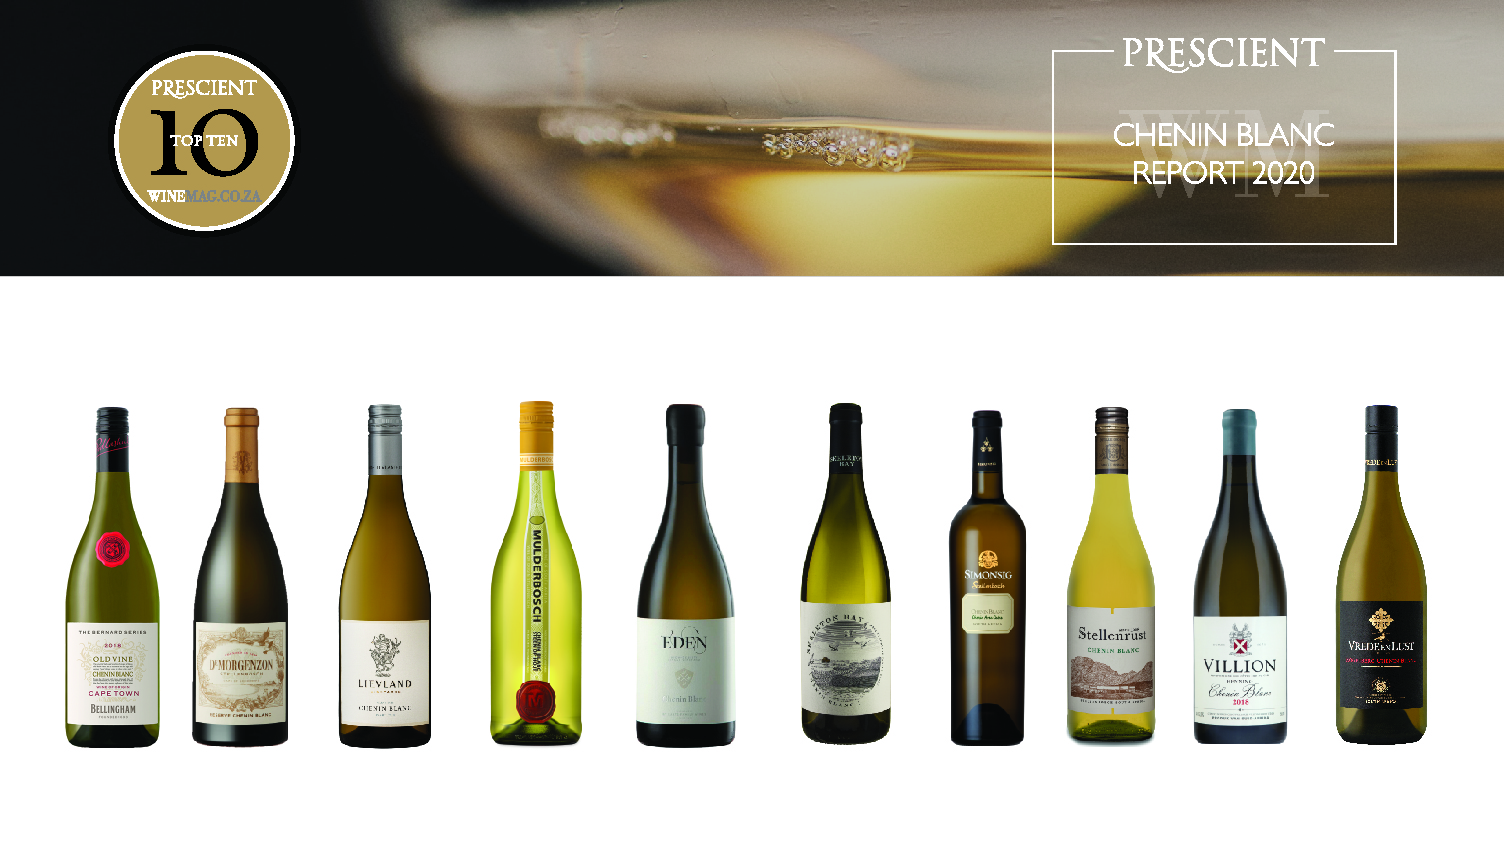 Prescient Chenin Blanc Report 2020 now live – Is this South Africa's strongest wine category? photo